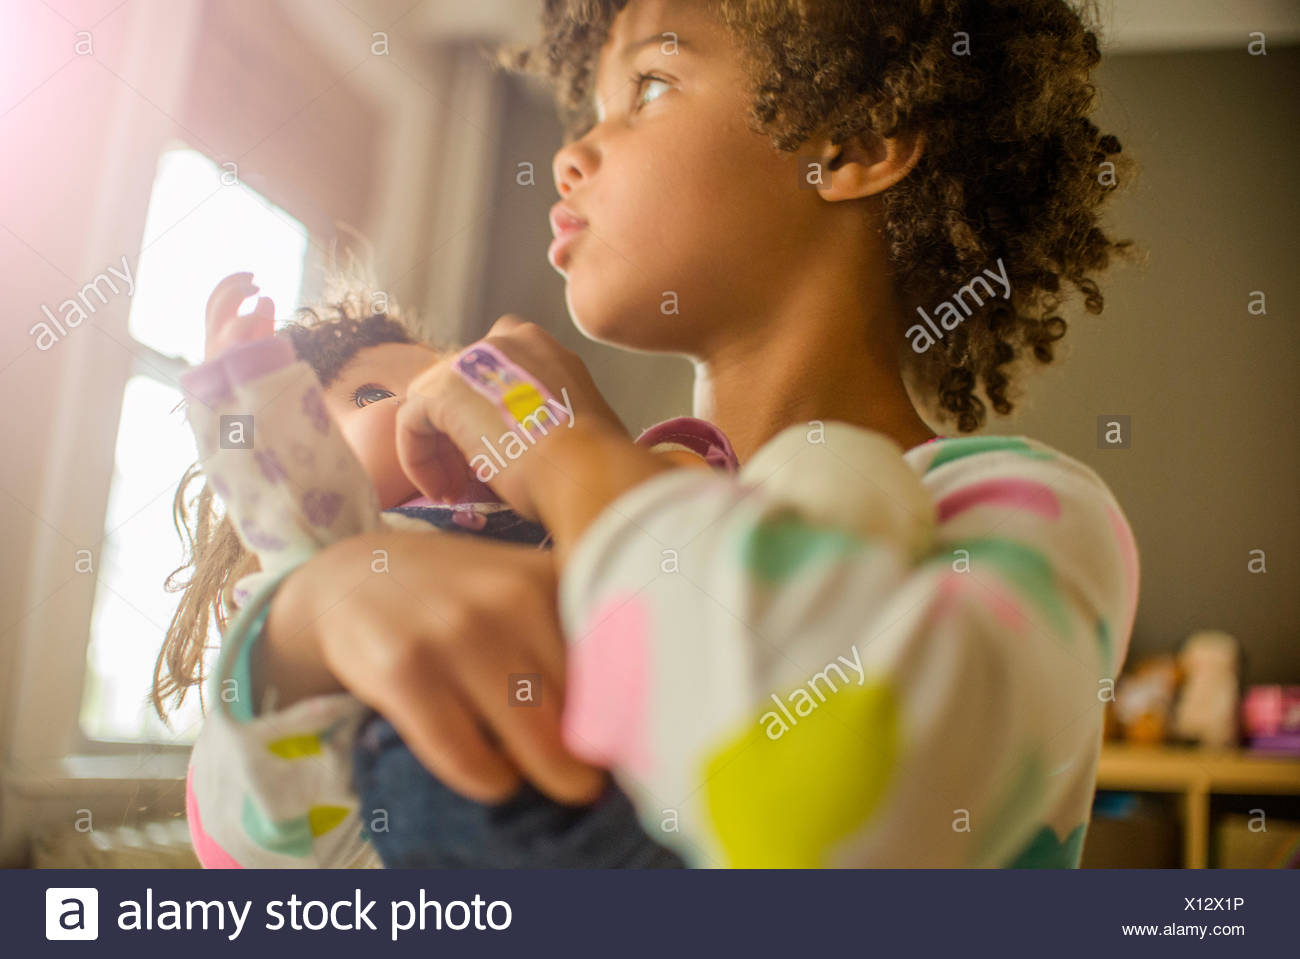 Close up of girl carrying and feeding doll - Stock Image